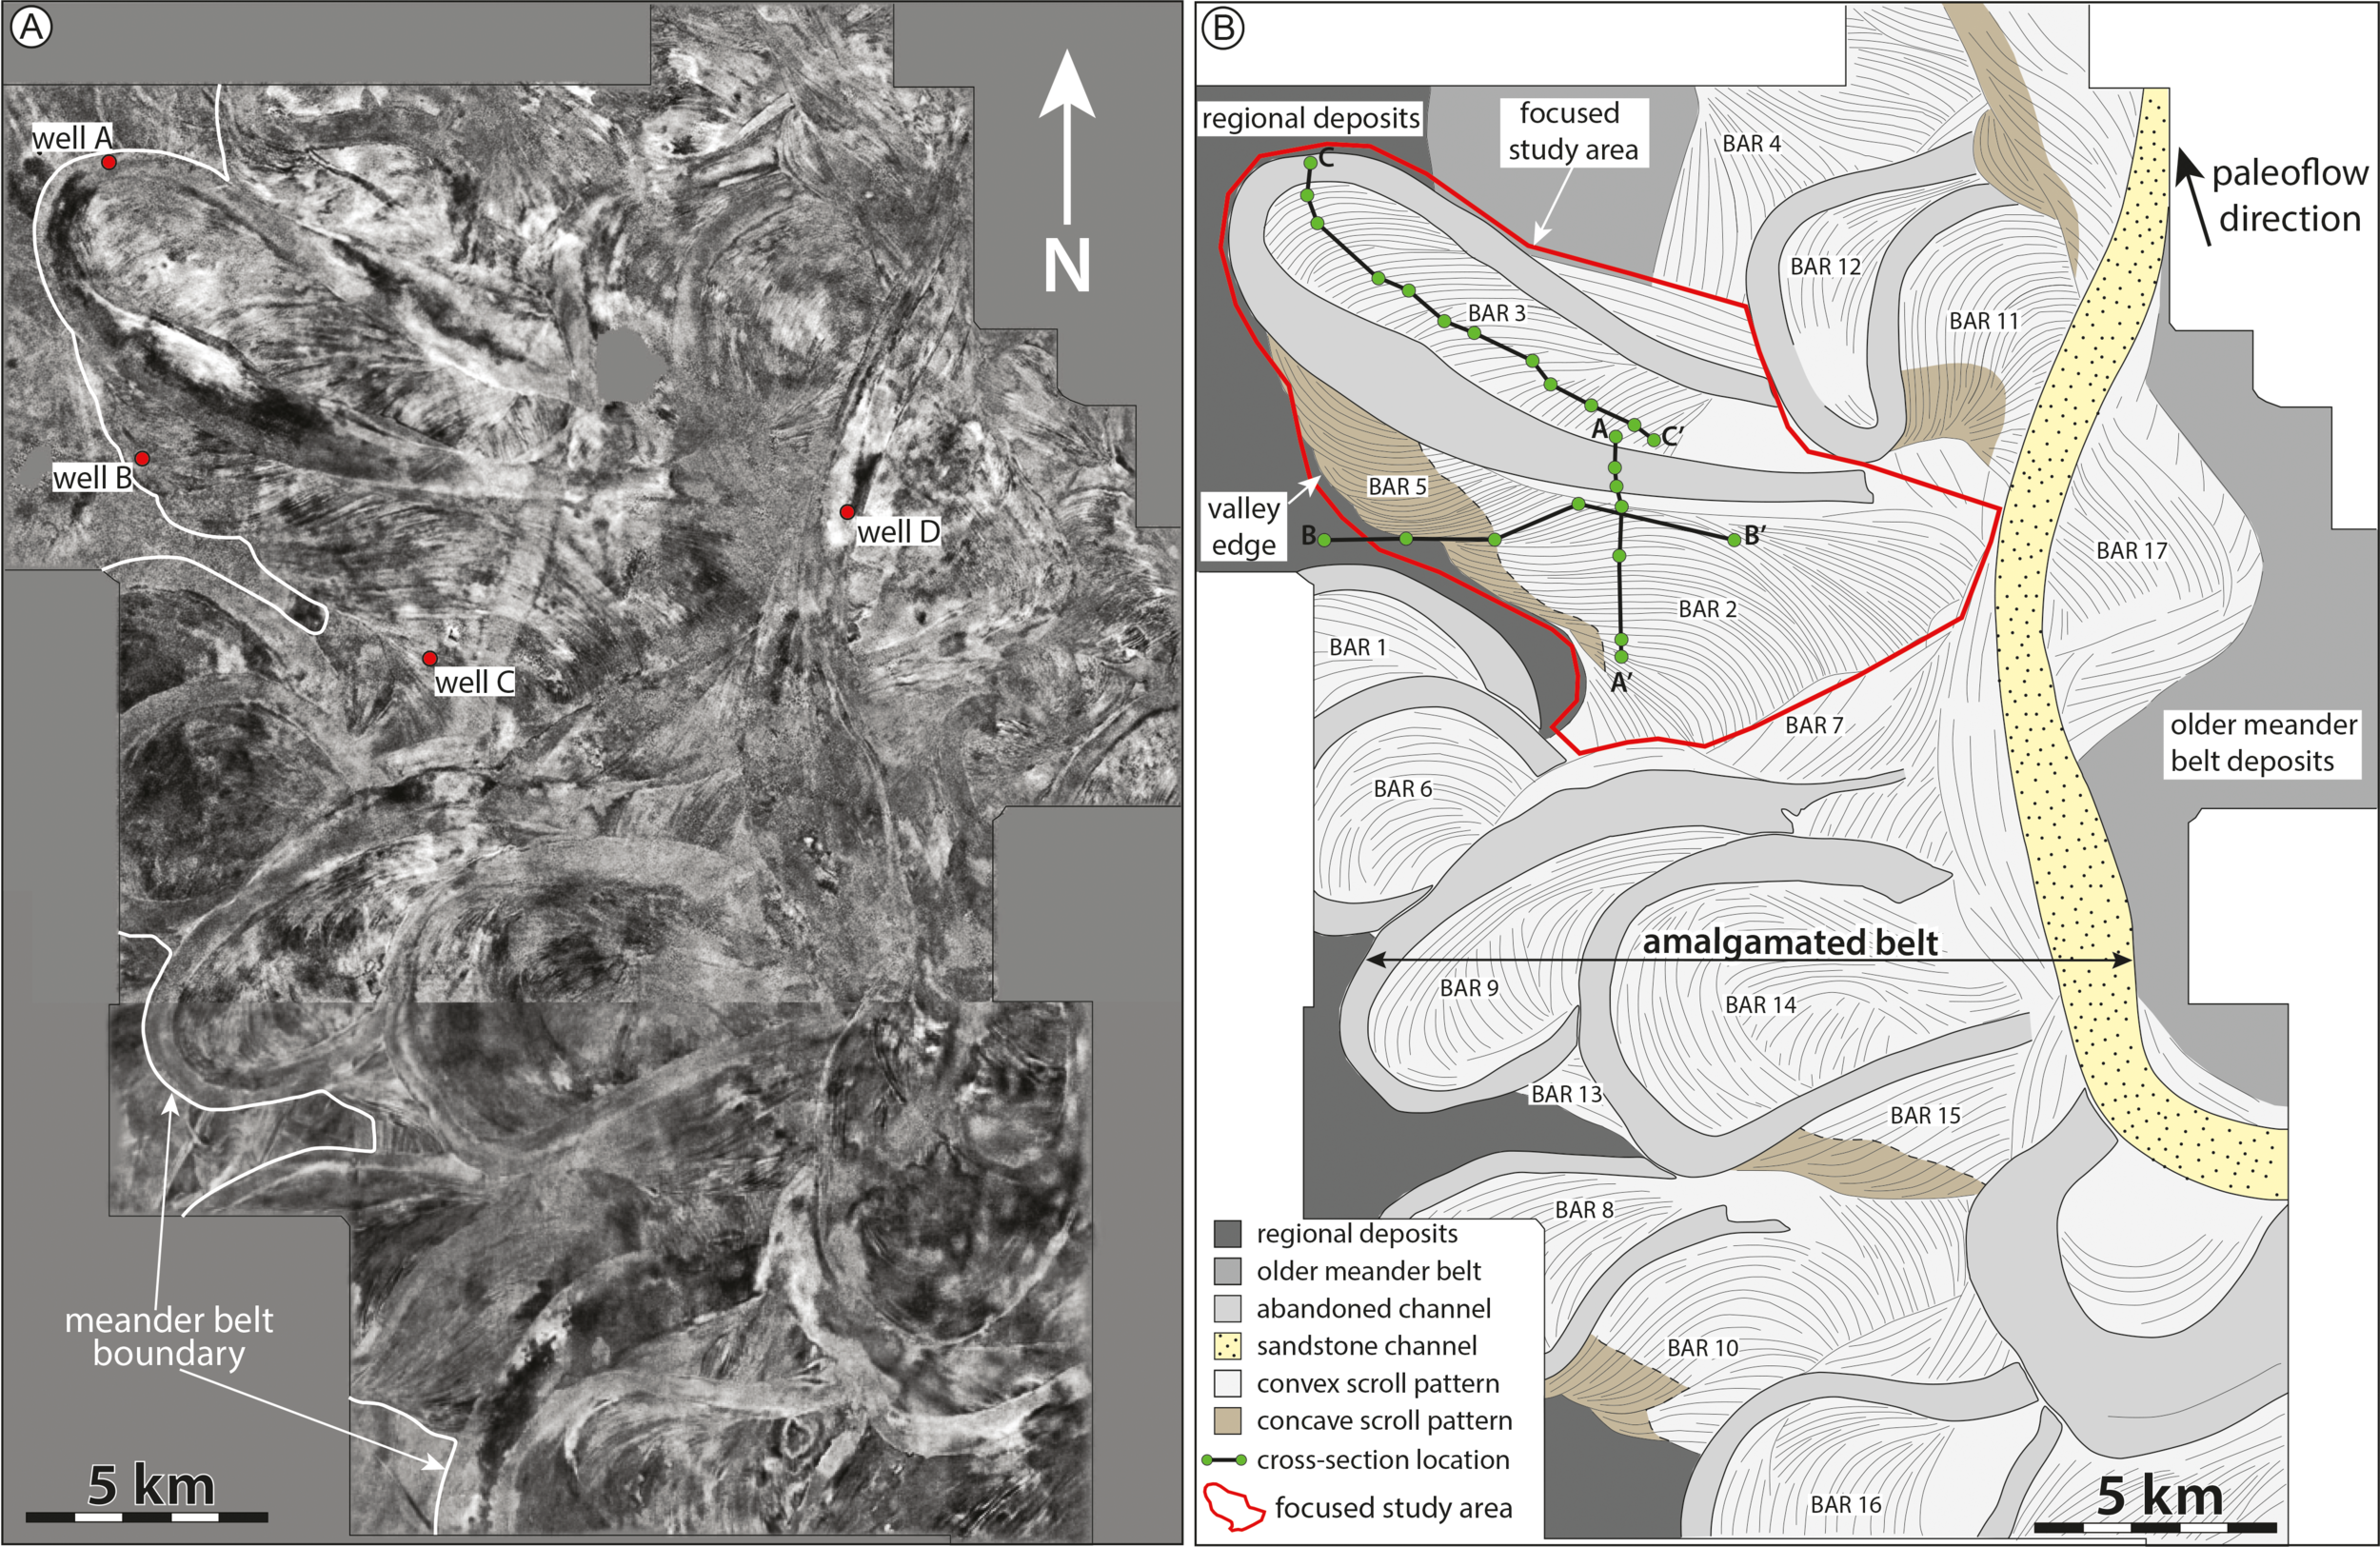 Figure 1 from Durkin et al (2017), showing a stratal slice from 10 ms below the top of the McMurray Formation (left), and its interpretation (right). ©2017, SEPM (Society for Sedimentary Geology) and licensed CC-BY.